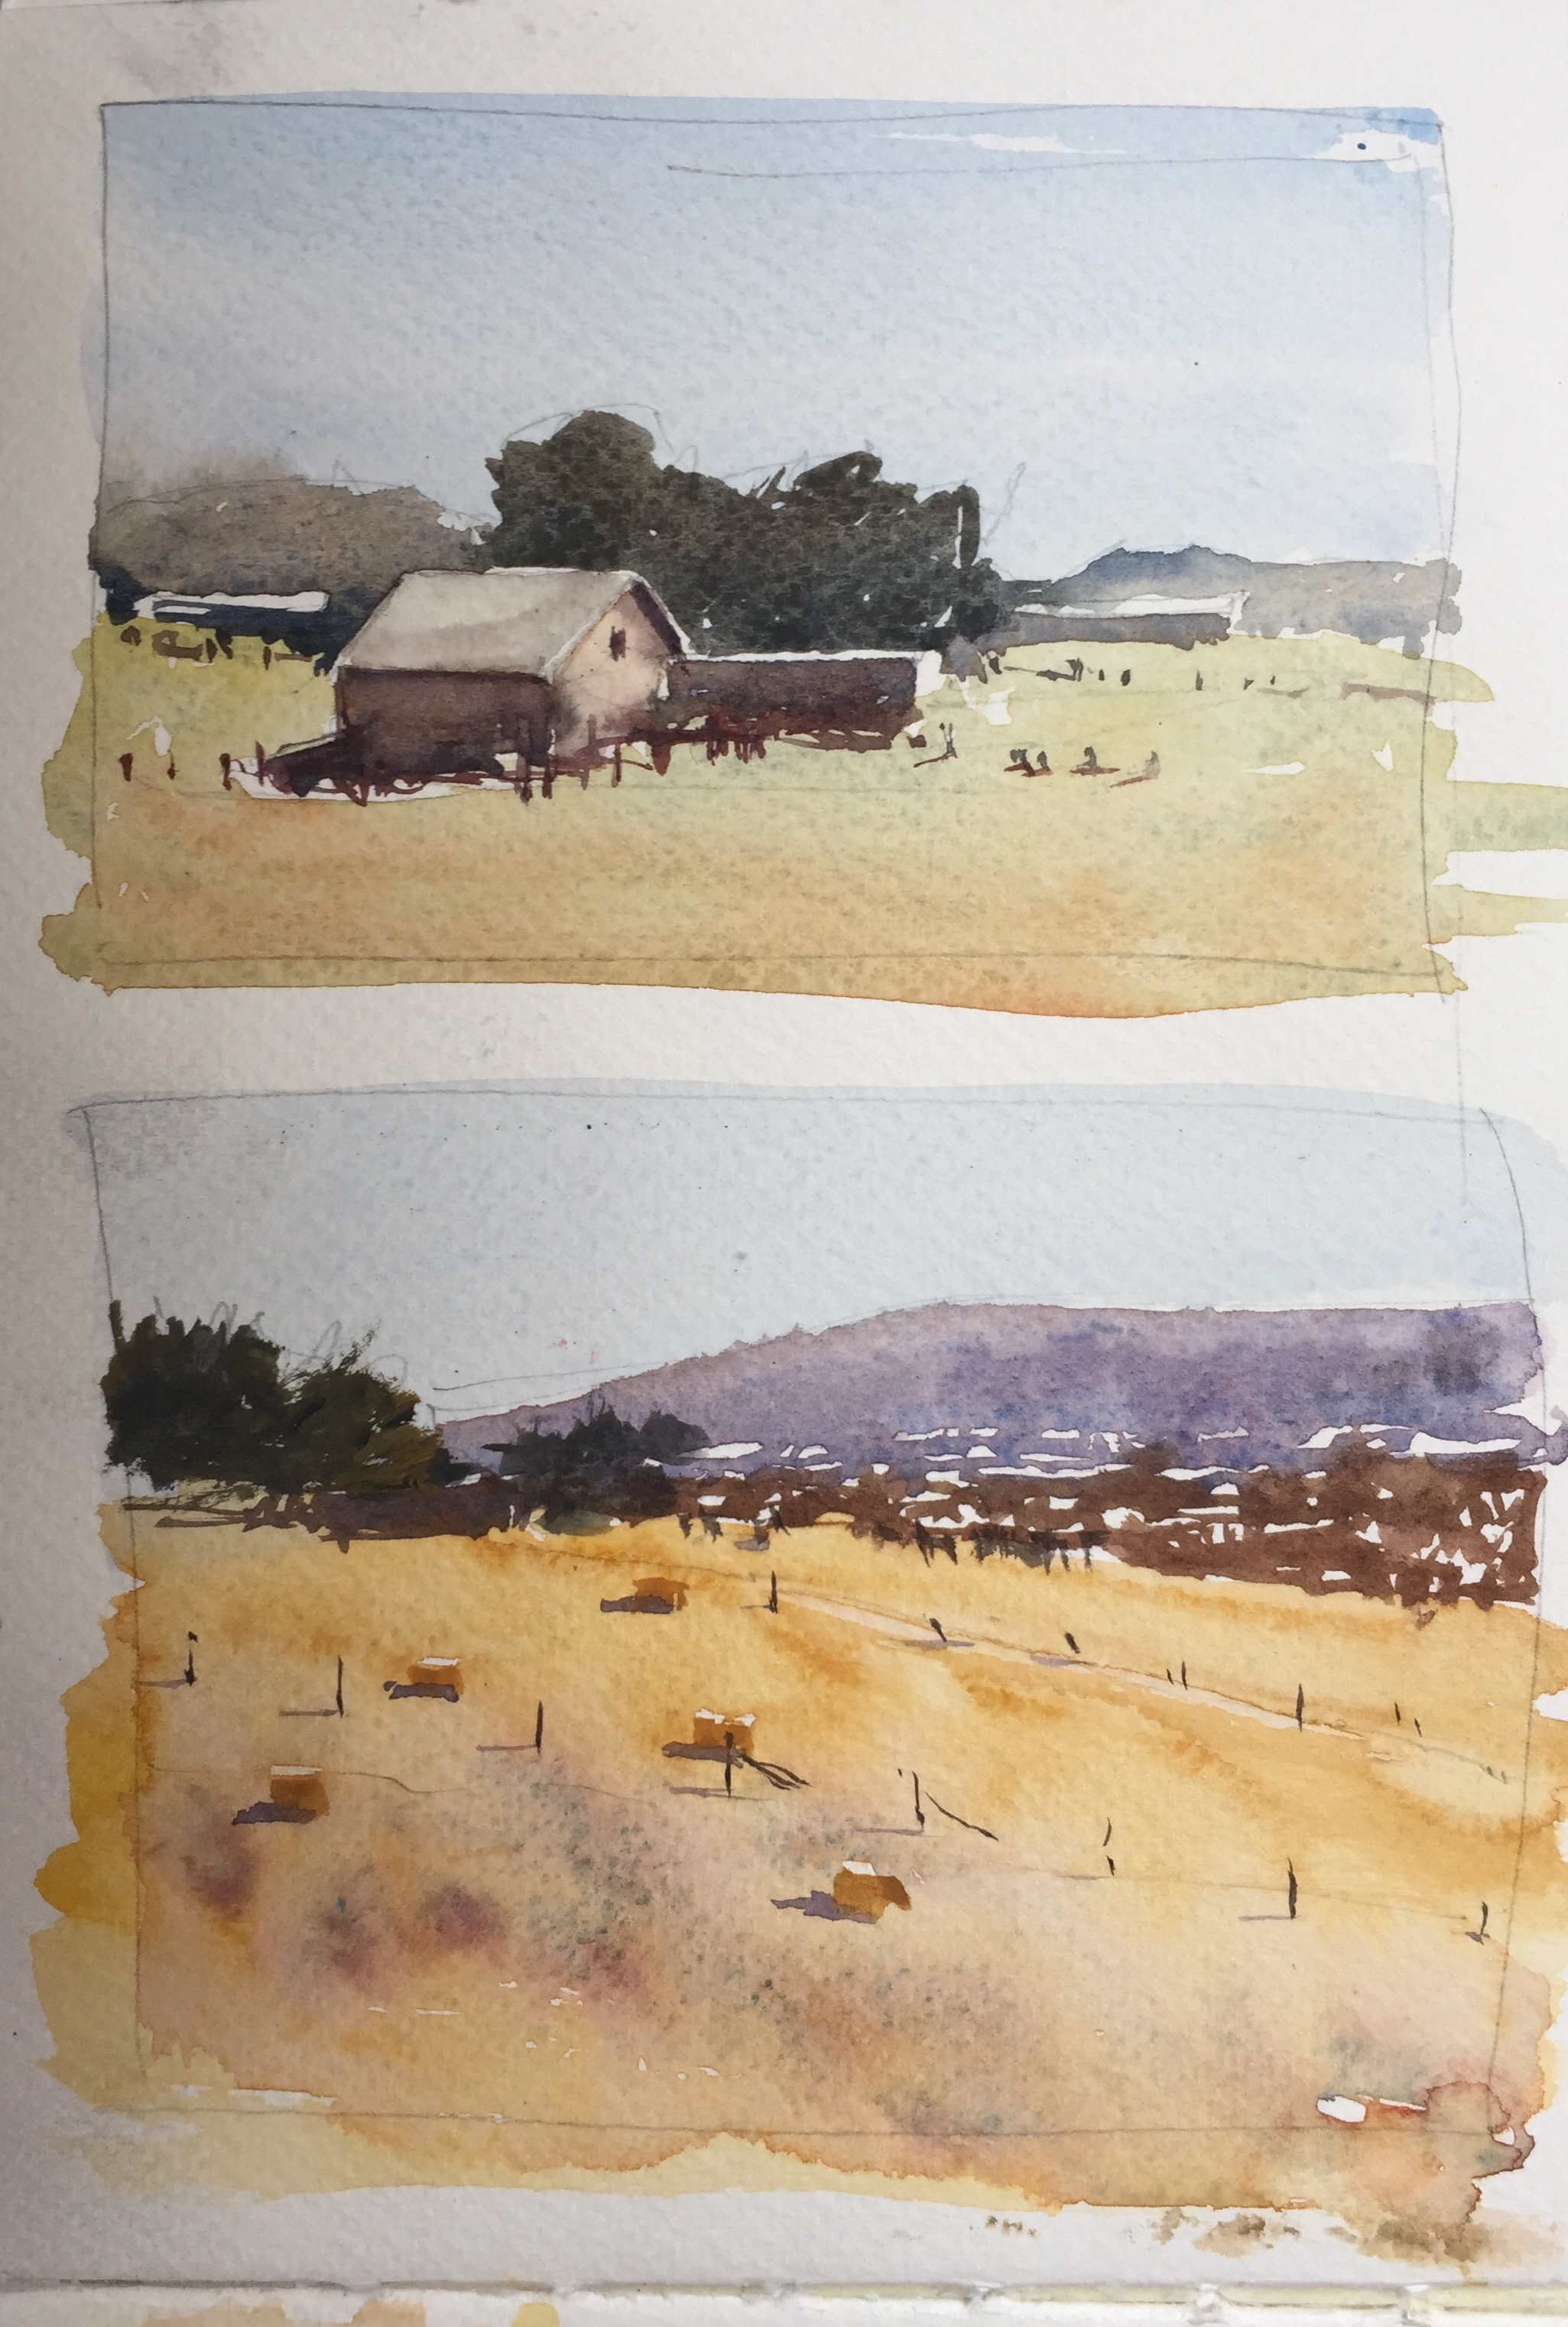 Watercolour sketches by John Haywood based on originals by Joseph Zbukvic